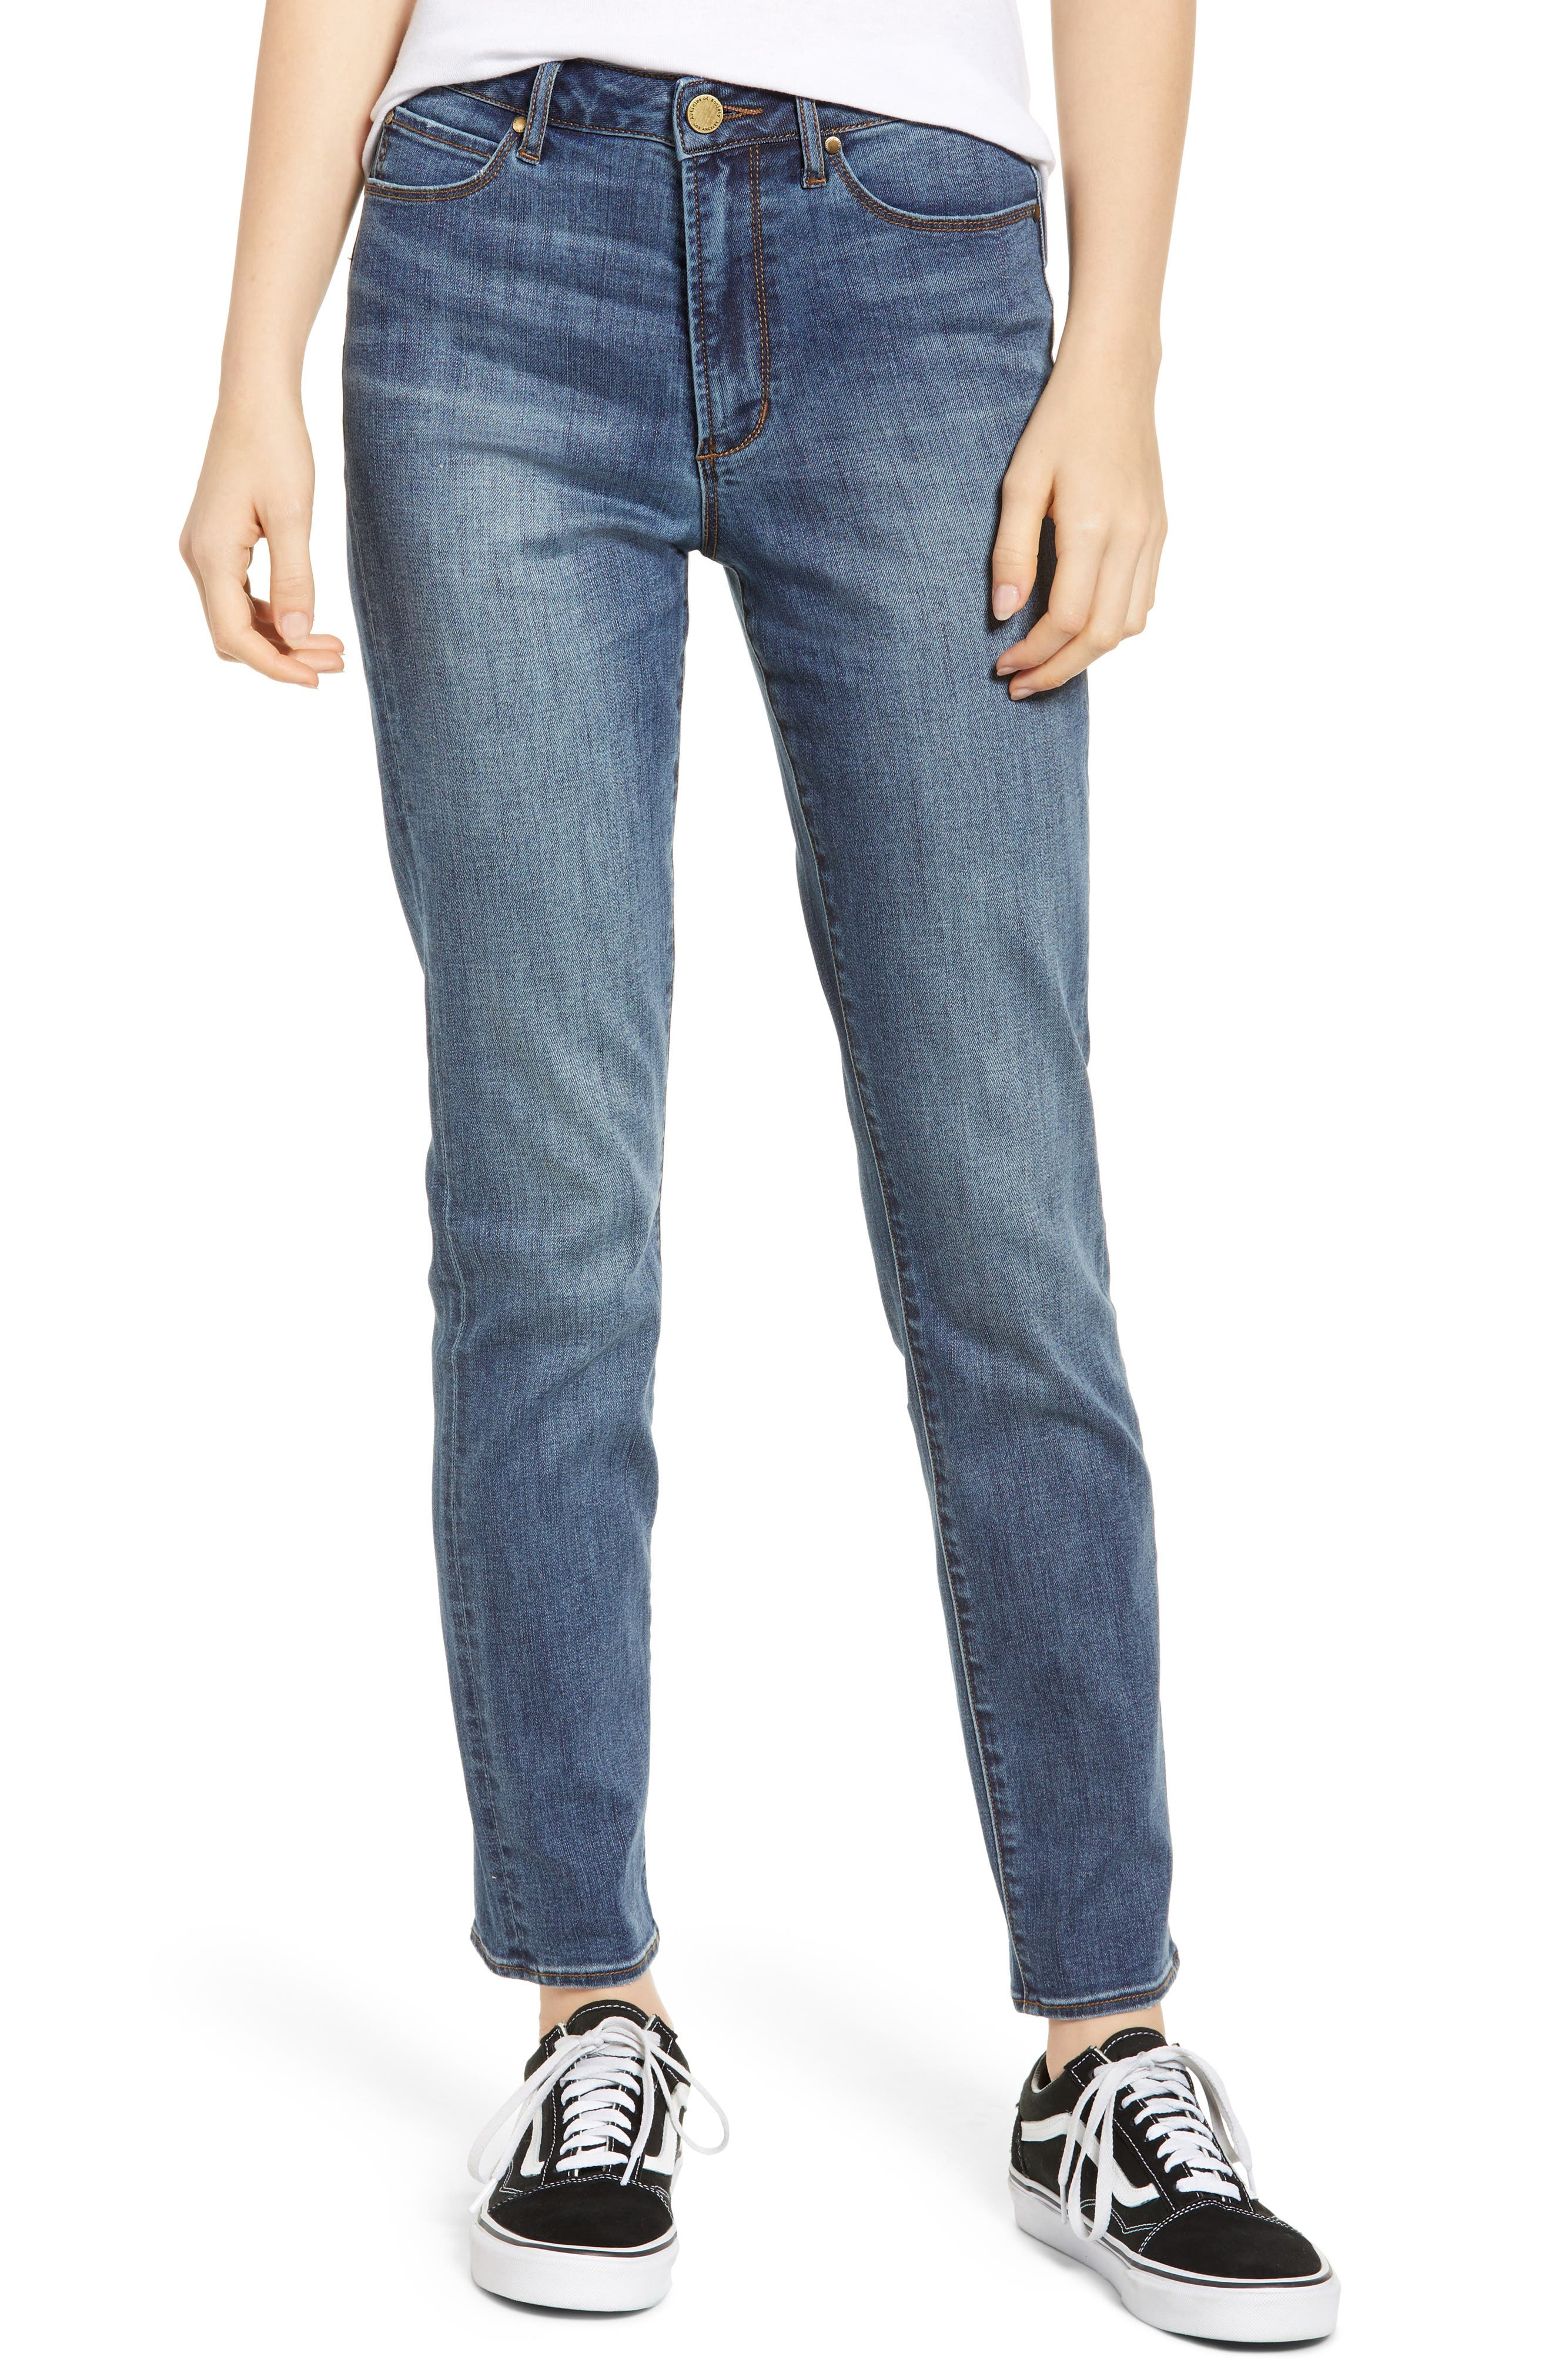 ARTICLES OF SOCIETY Rene High Waist Straight Leg Jeans in Carrefour